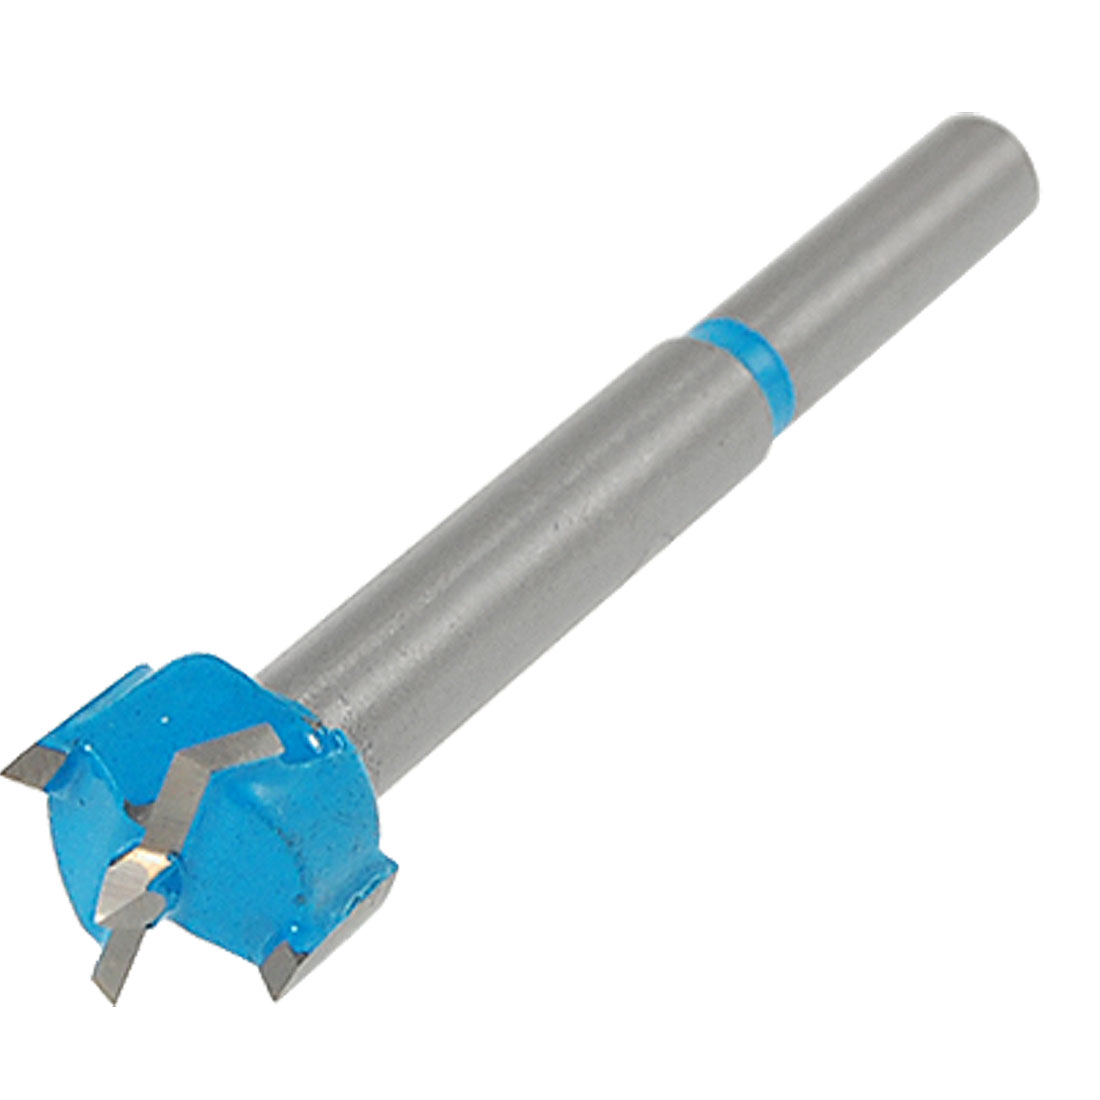 Woodworking 16mm Cutting Diameter Hinge Boring Drill Bit